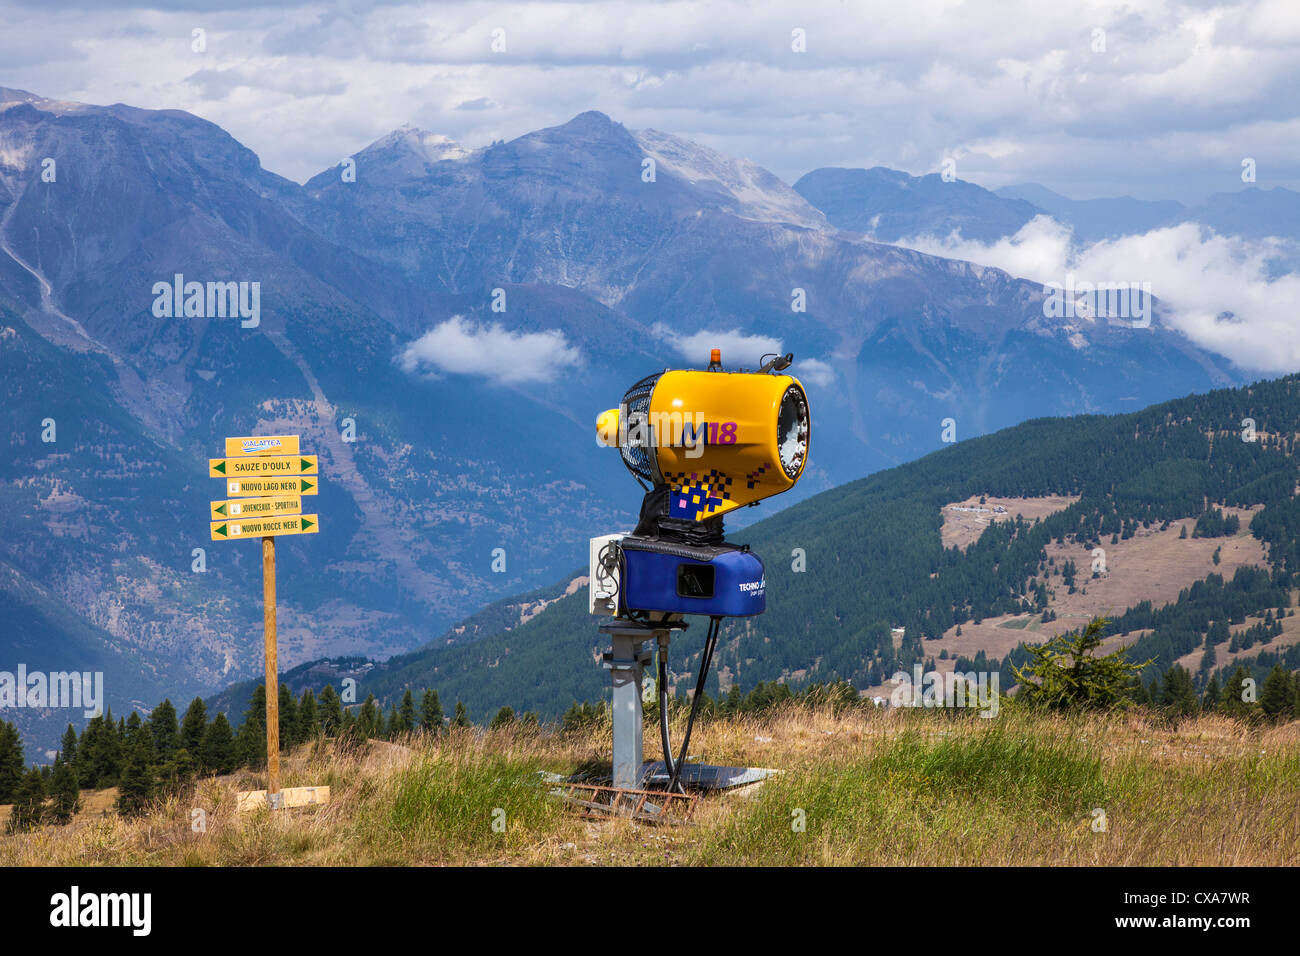 Snow canon on the mountainside during the summer, near Sestriere, Italy - Stock Image